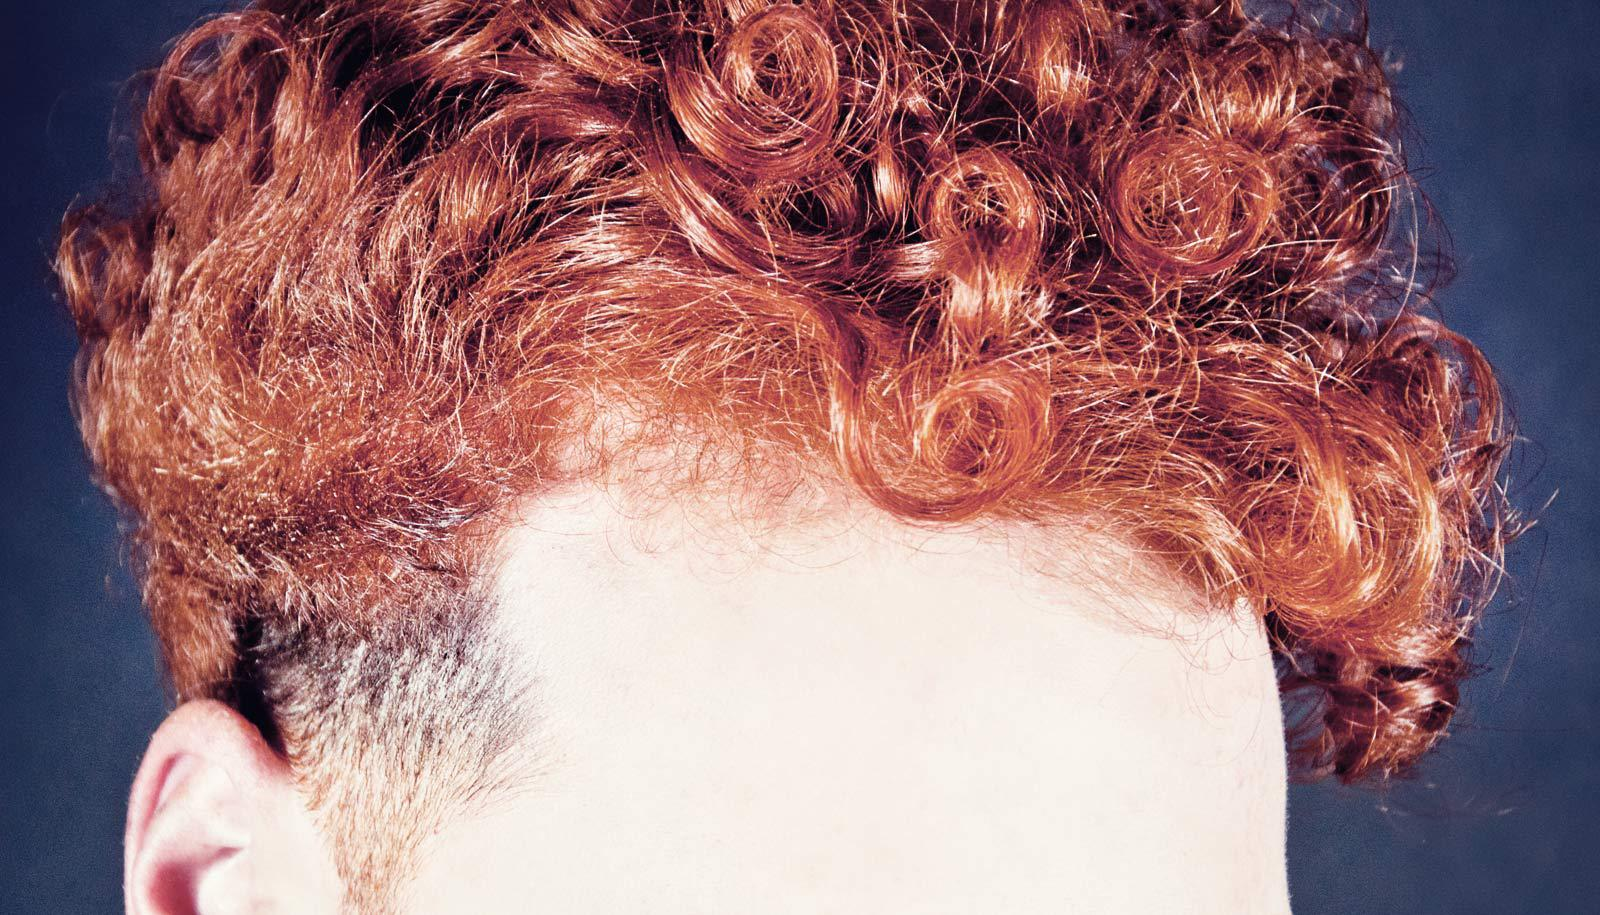 curly red hair, forehead